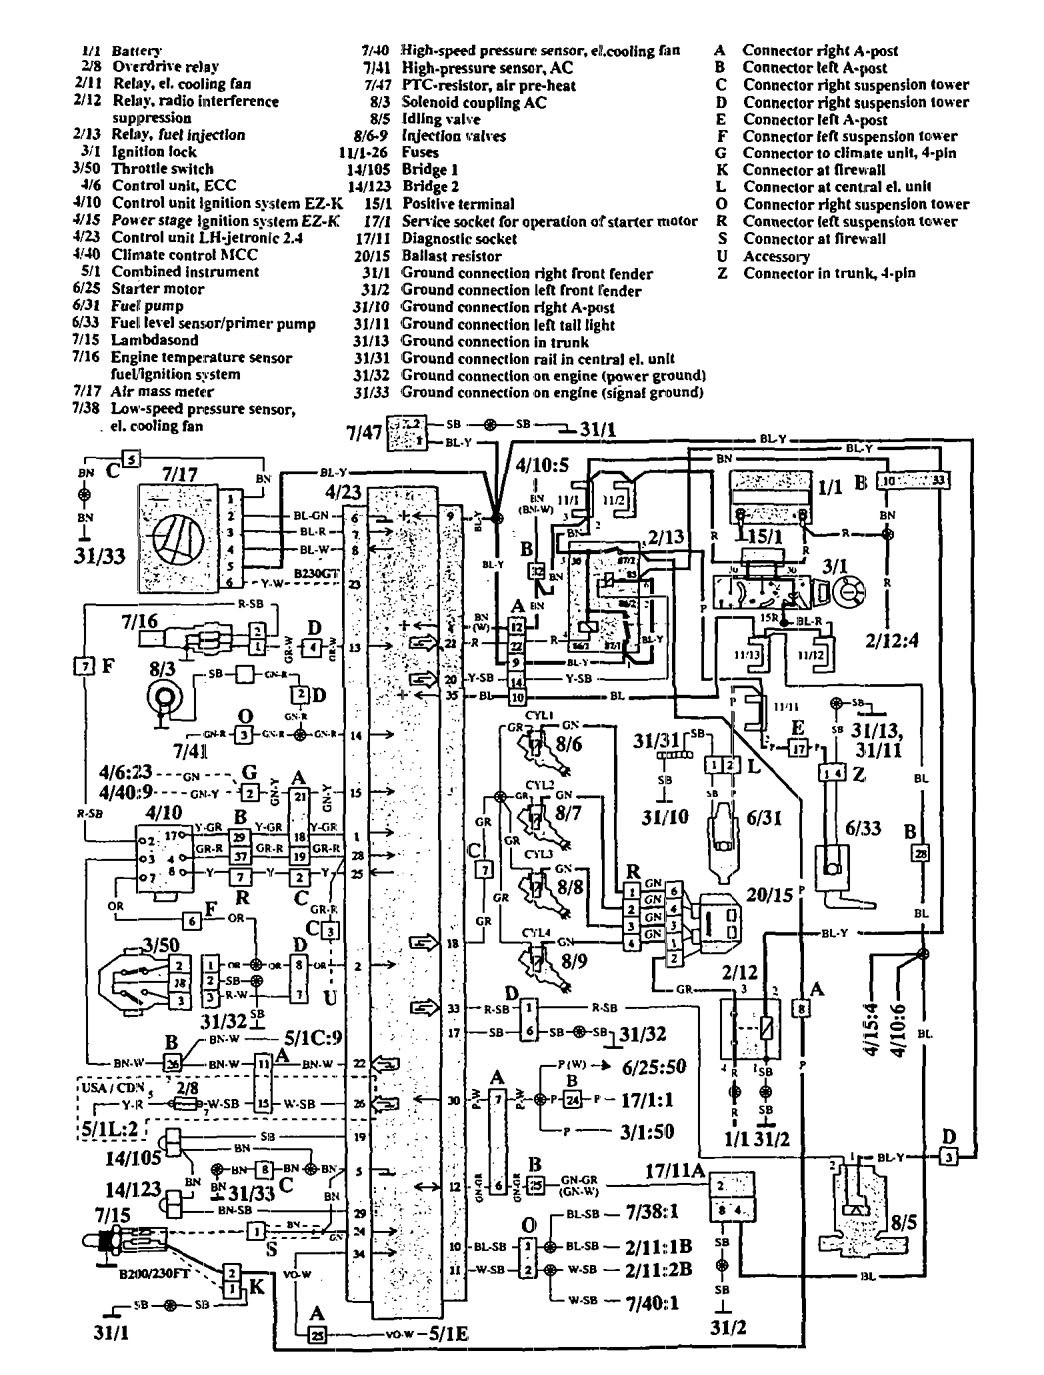 volvo wiring diagram cat dissection muscles 940 1992 diagrams fuel controls